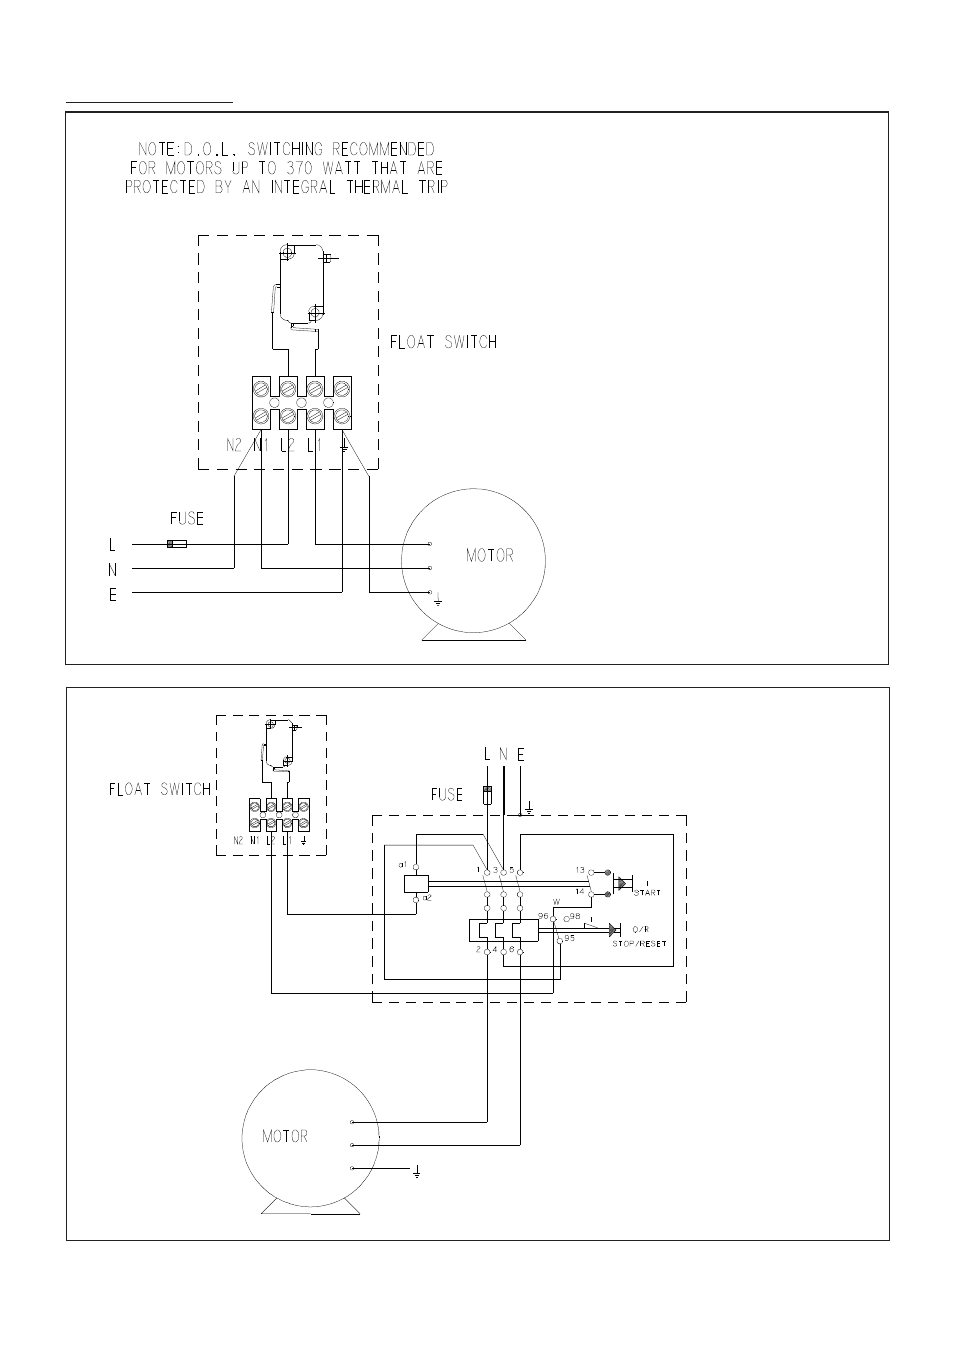 diagram of a float switch schematic wiring diagrams stuart turner float switch user manual page 11  stuart turner float switch user manual